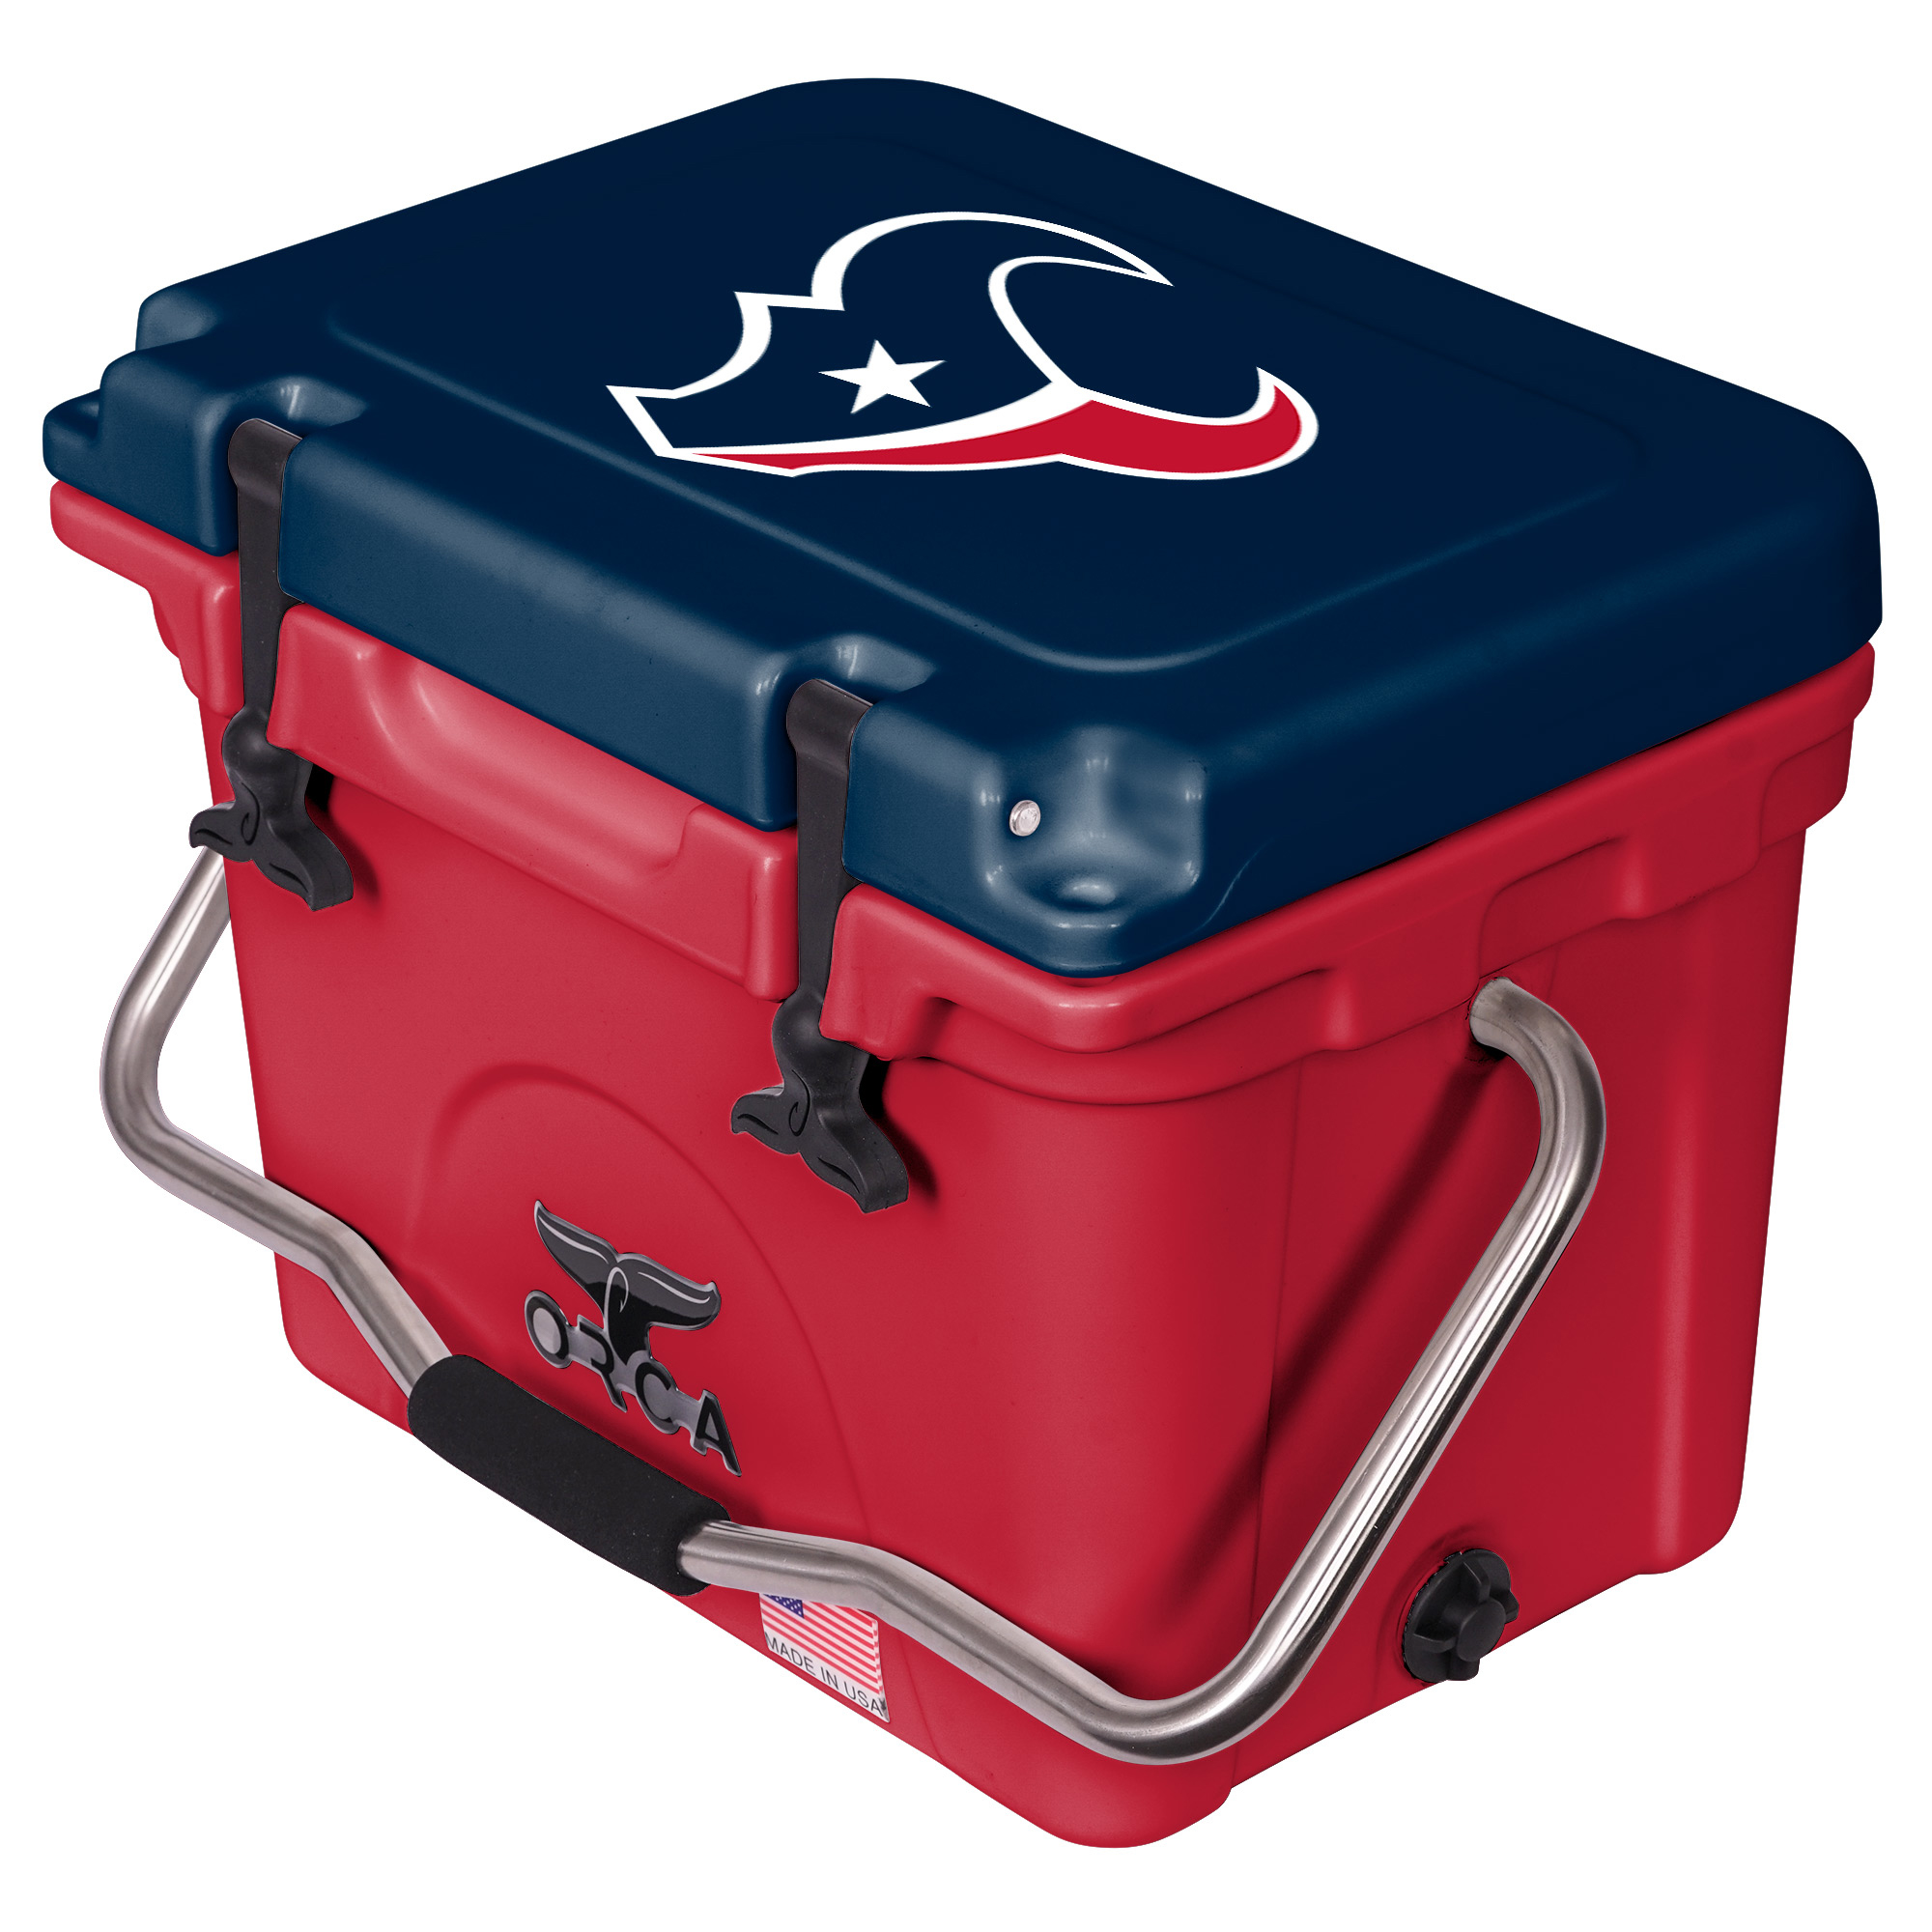 Houston Texans ORCA 20-Quart Hard-Sided Cooler - Red/Navy - No Size